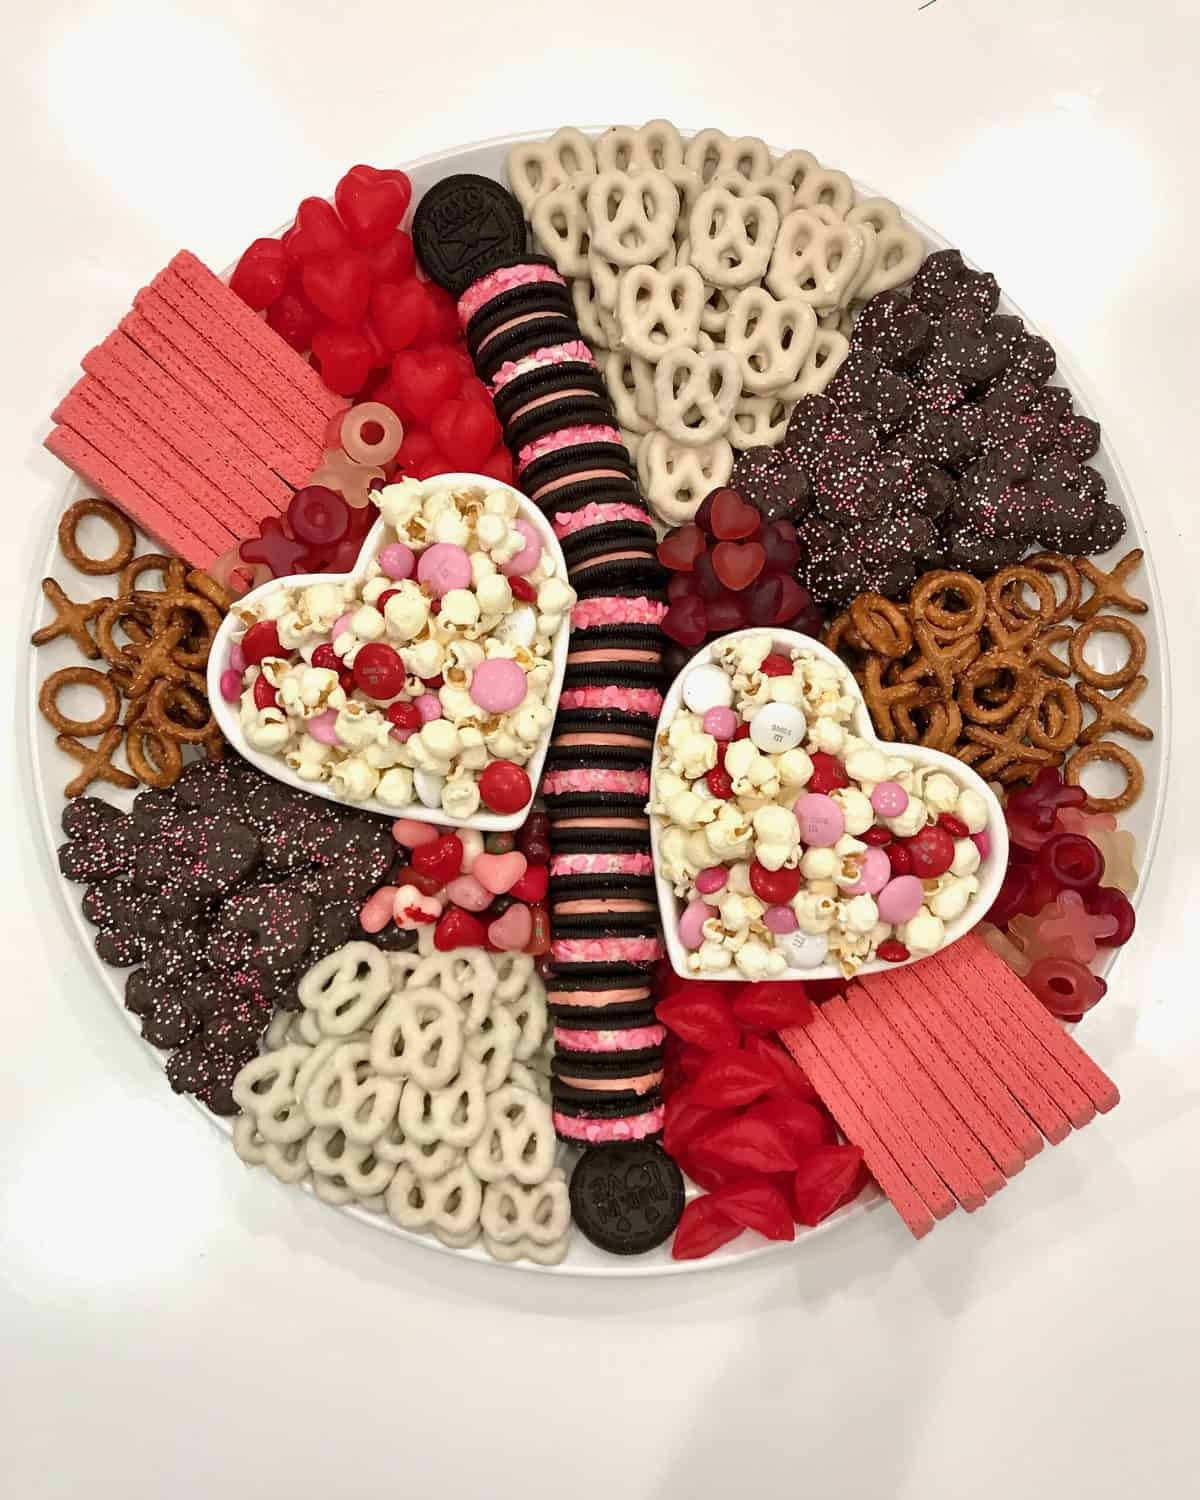 Sweet and Salty Valentine's Day Snack Board by The BakerMama